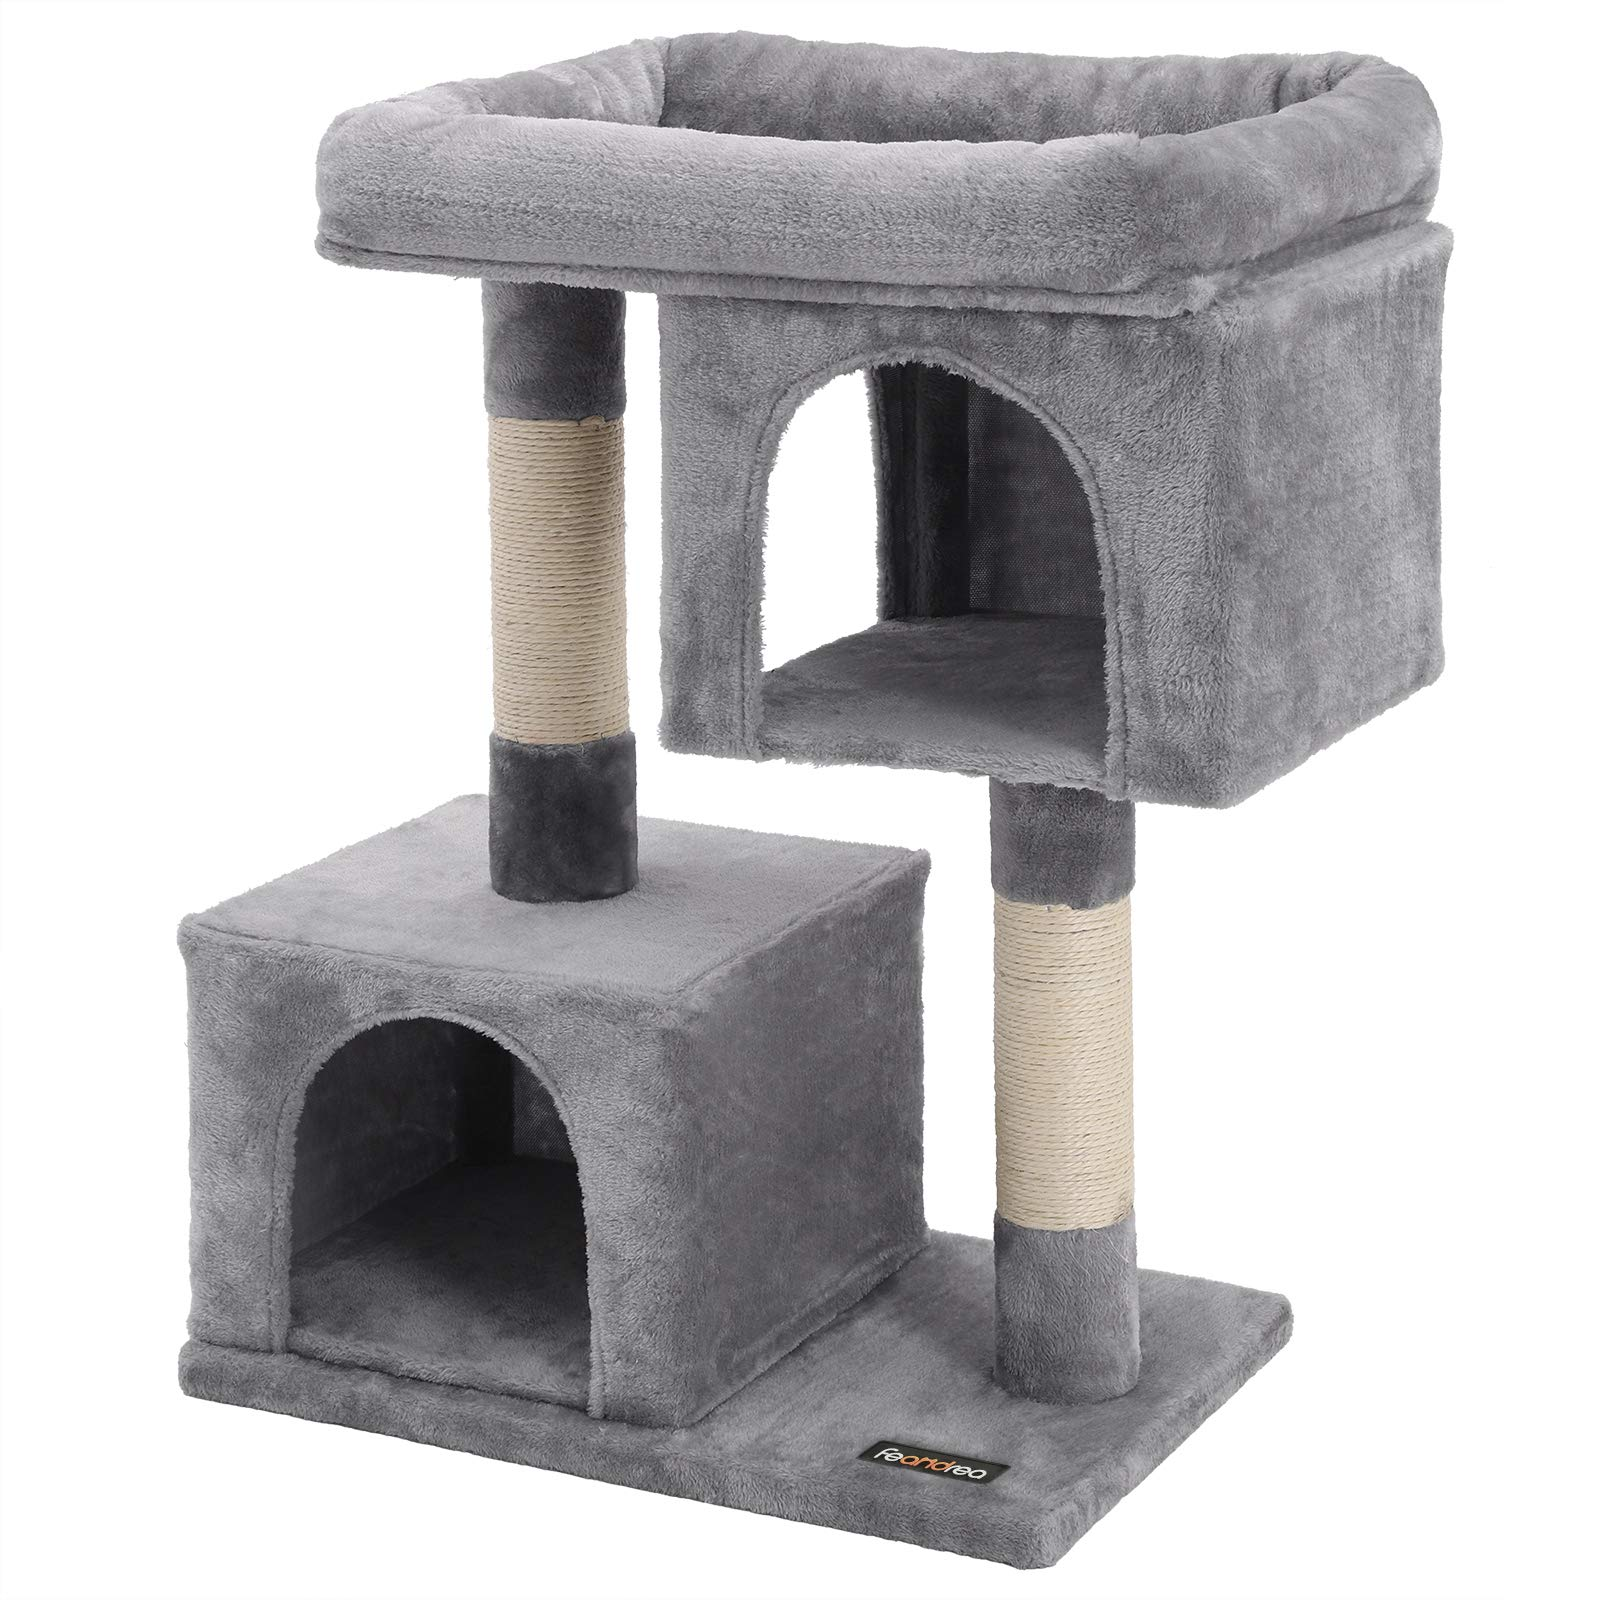 Mua Feandrea Cat Tree For Large Cats Cat Tower 2 Cozy Plush Condos And Sisal Posts Trên Amazon Mỹ Chính Hãng 2021 Fado